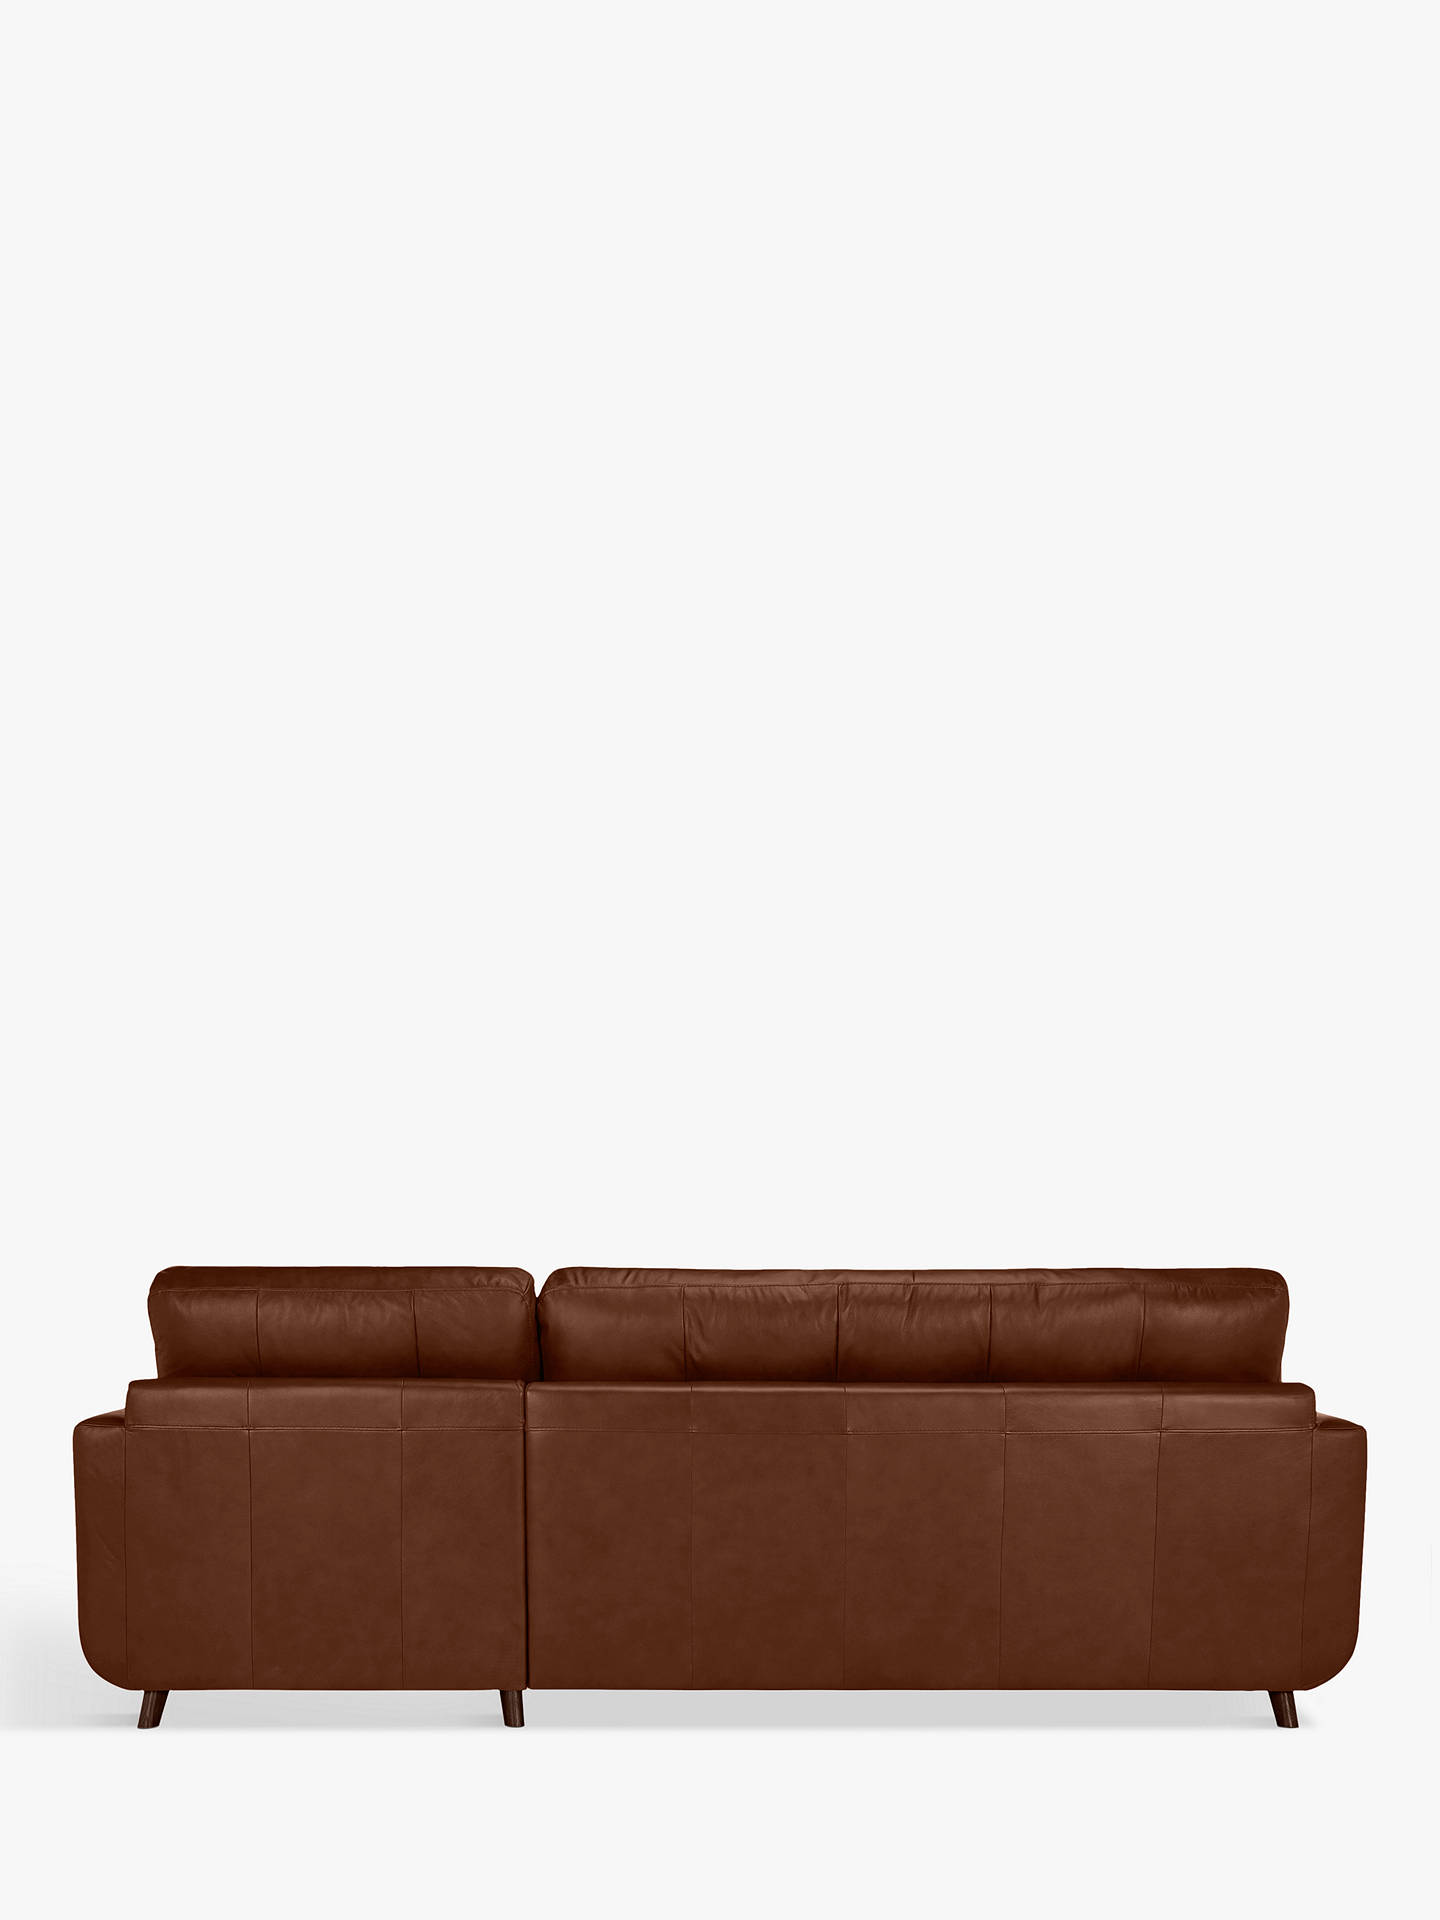 John Lewis & Partners Barbican Leather Sofa Bed RHF Chaise ...